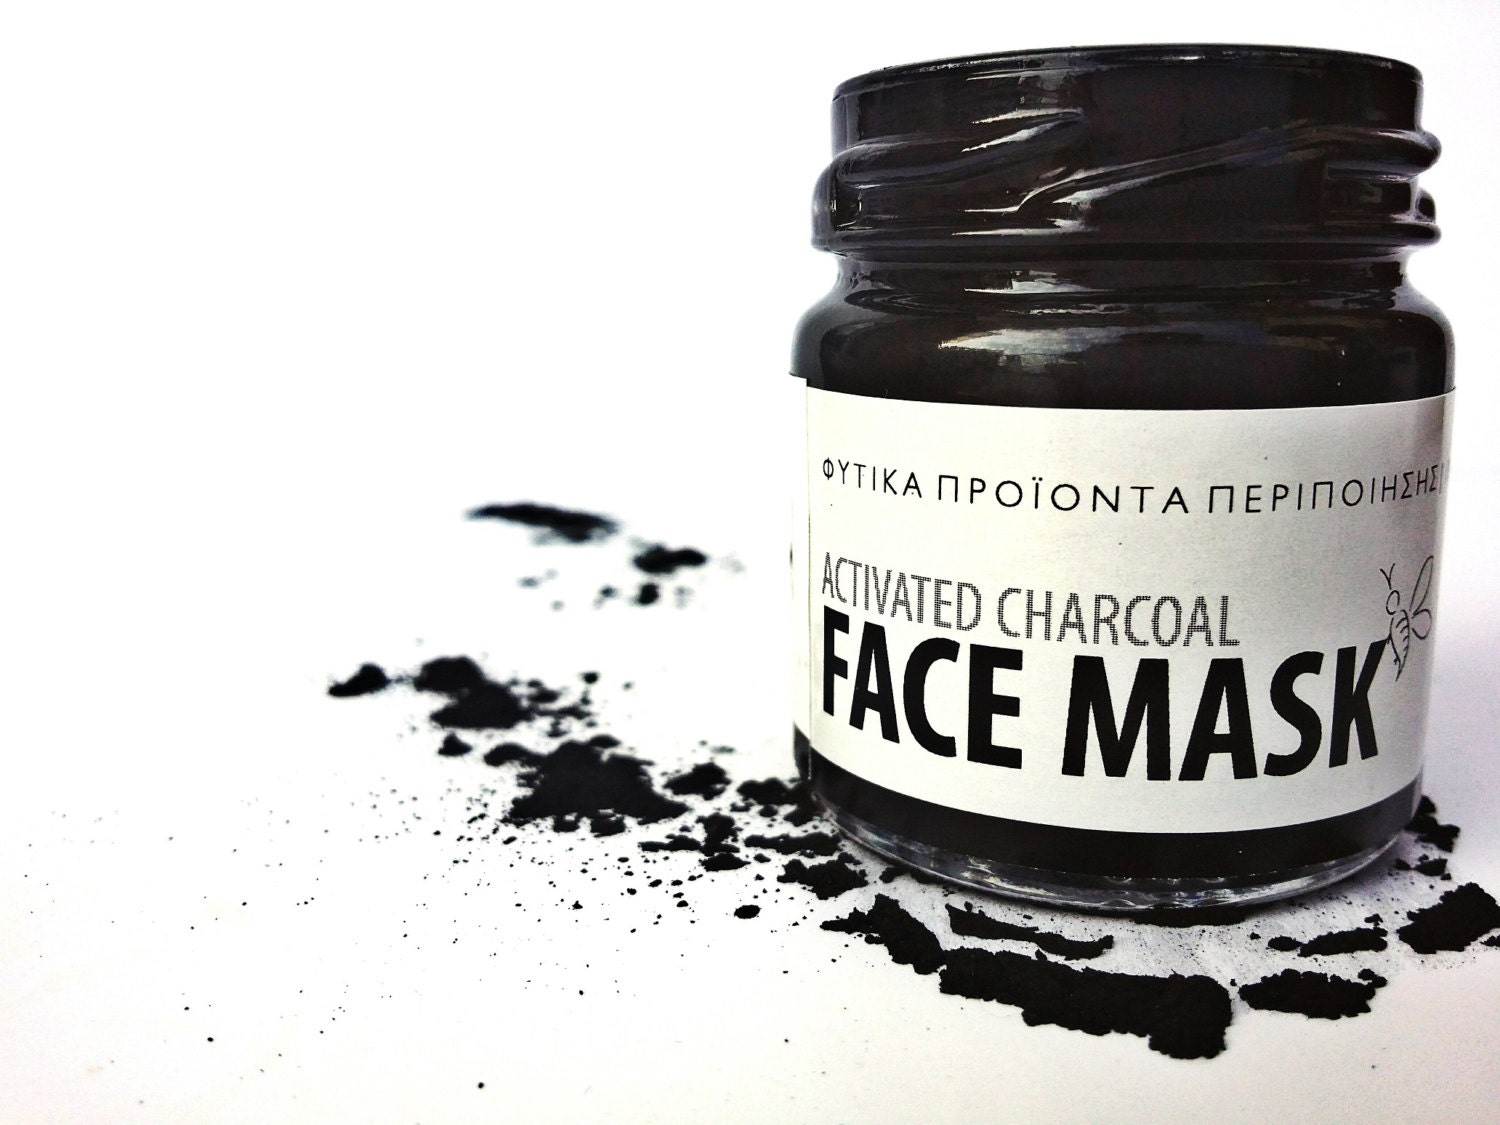 activated charcoal facial mask detox mask by thebeekeepershop. Black Bedroom Furniture Sets. Home Design Ideas